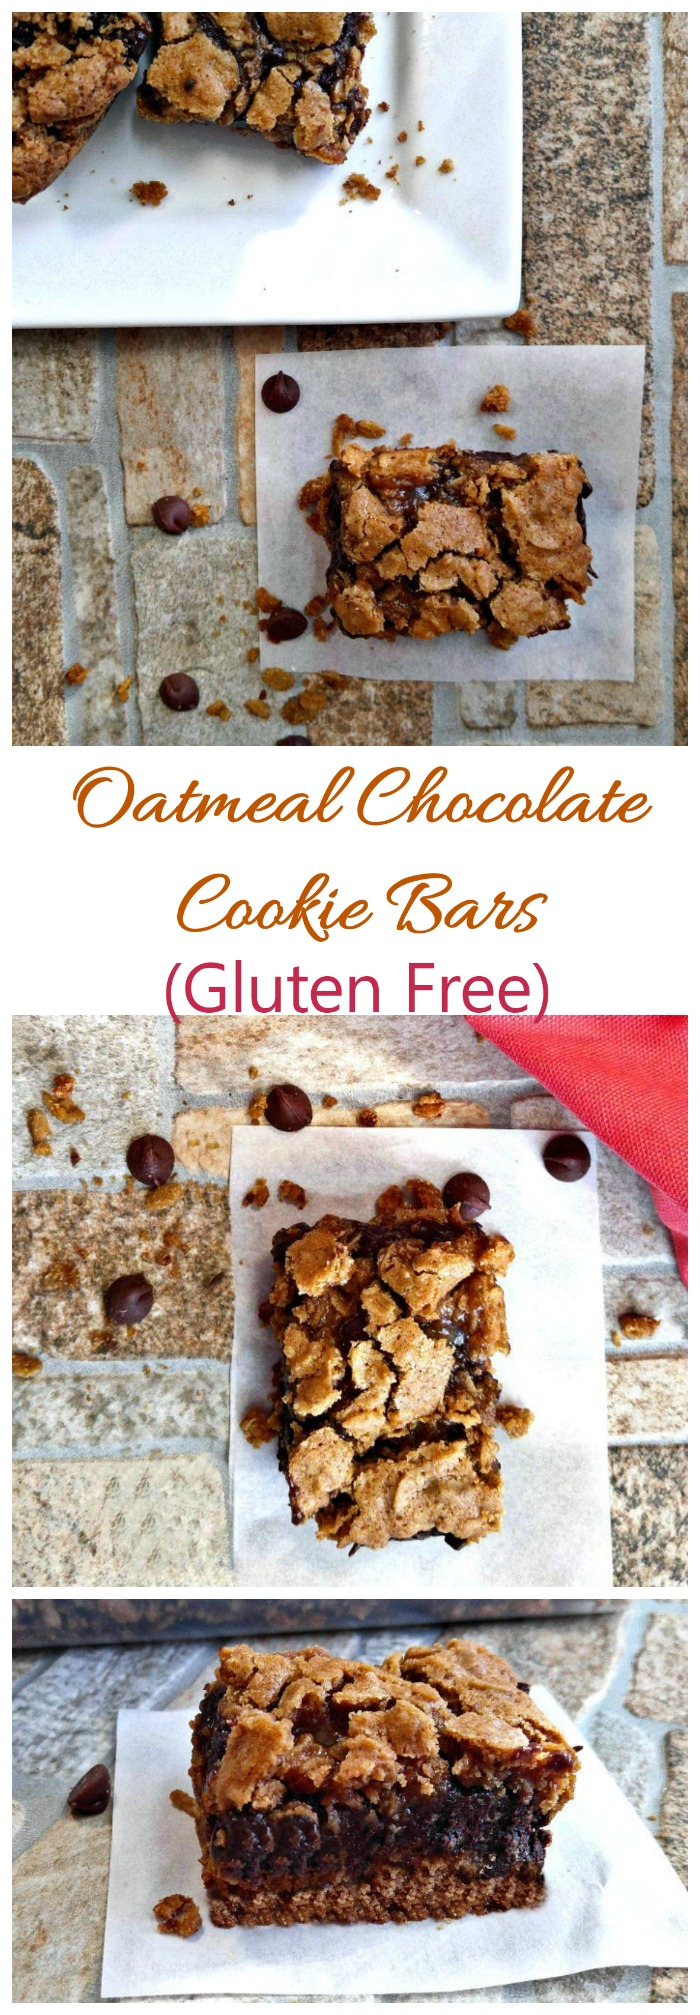 These hearty oatmeal chocolate cookie bars are gluten free and super easy to make.